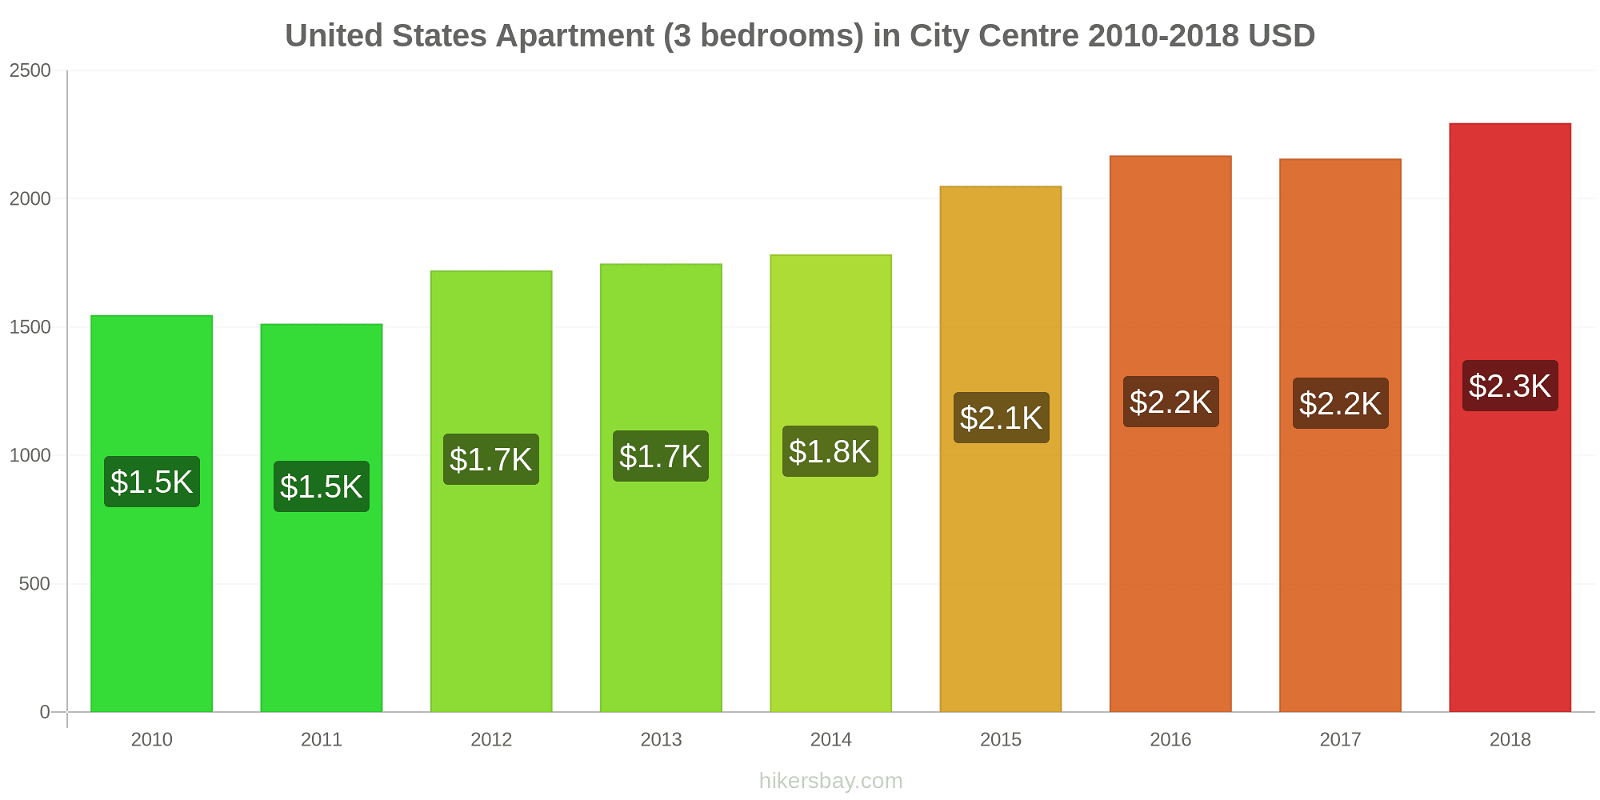 United States price changes Apartment (3 bedrooms) in City Centre hikersbay.com